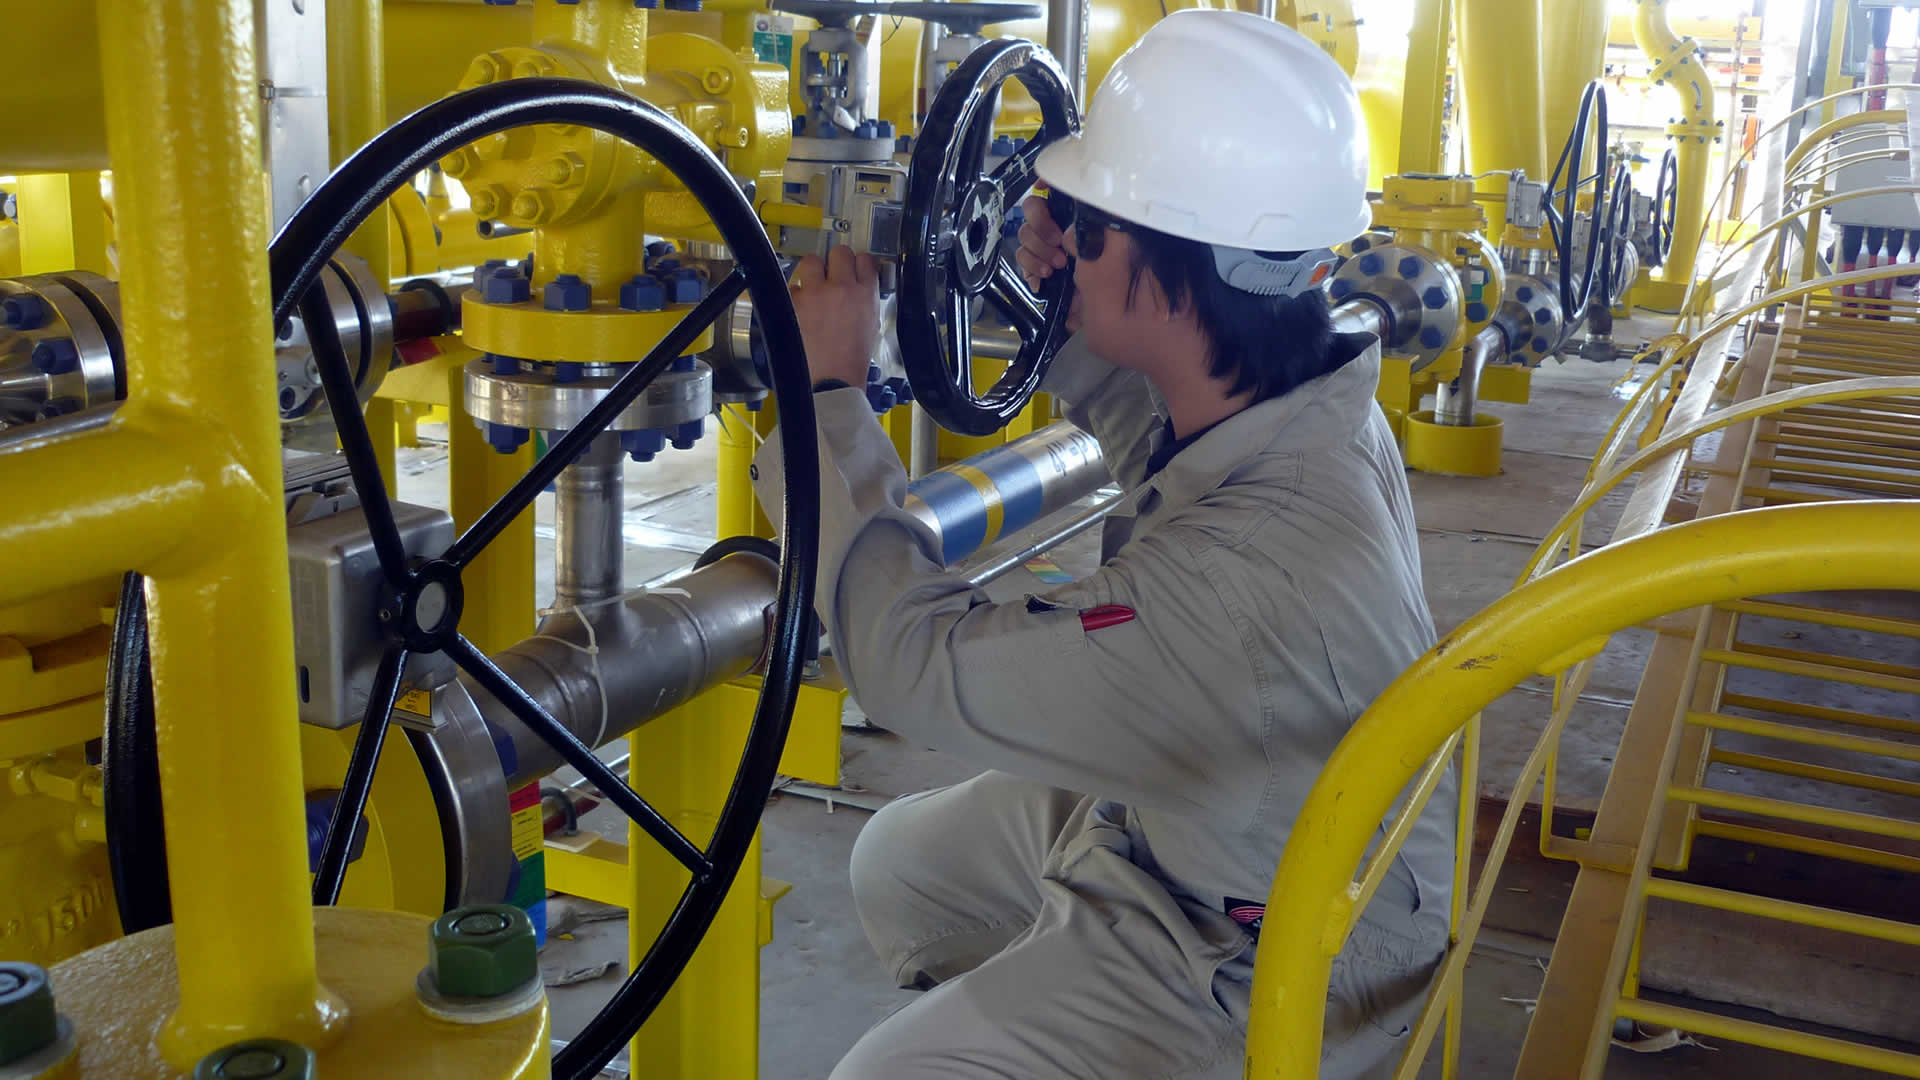 Valve interlock maintenance by Sofis engineer